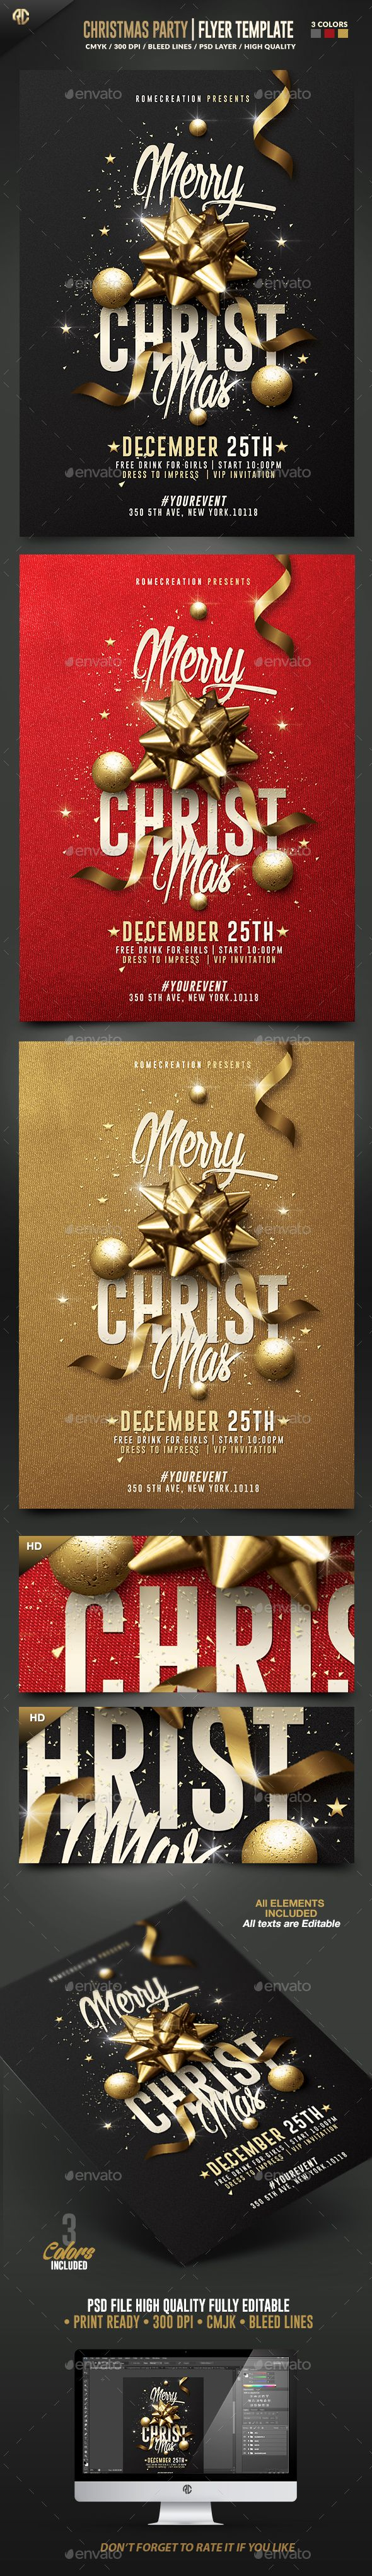 Classy Christmas Party | Psd Flyer Template - Flyers Print Templates